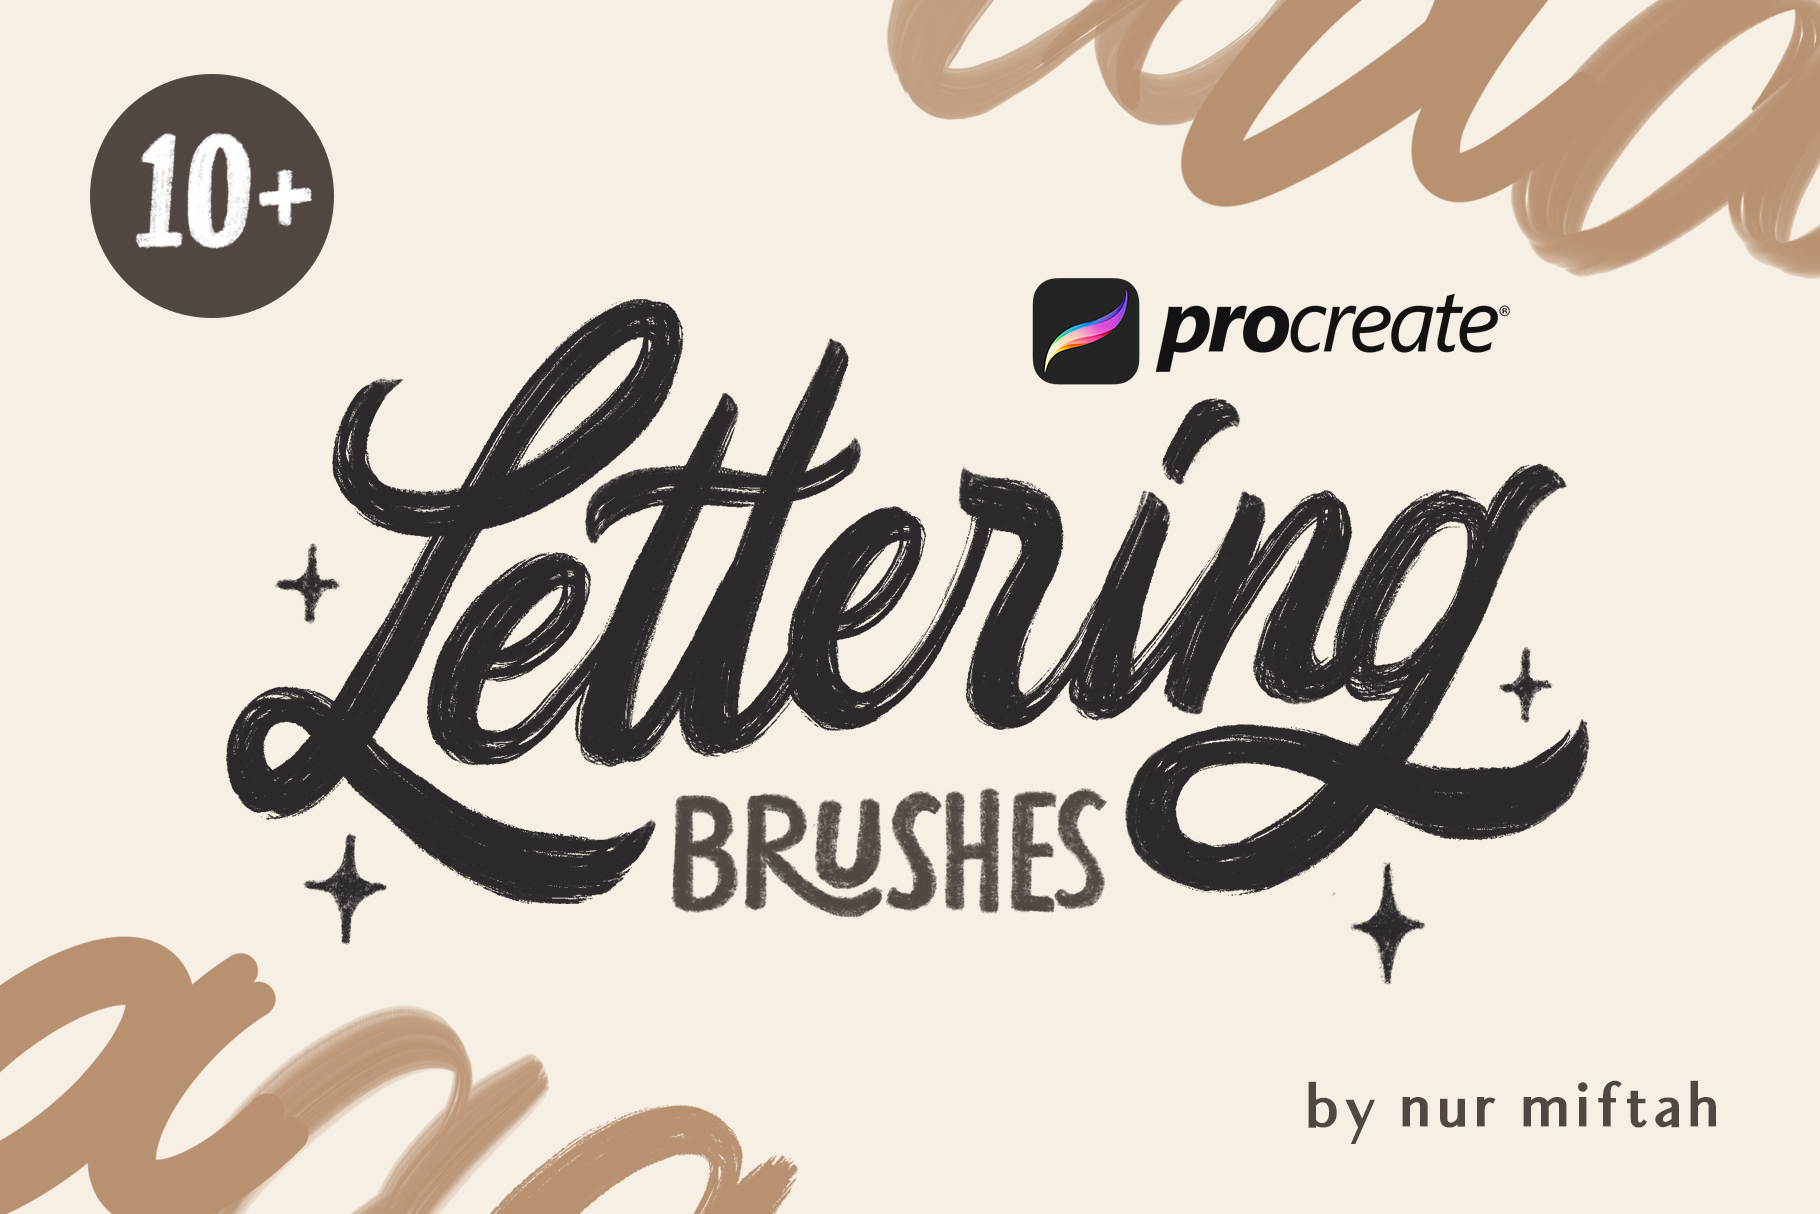 Procreate Lettering Brushes example image 1